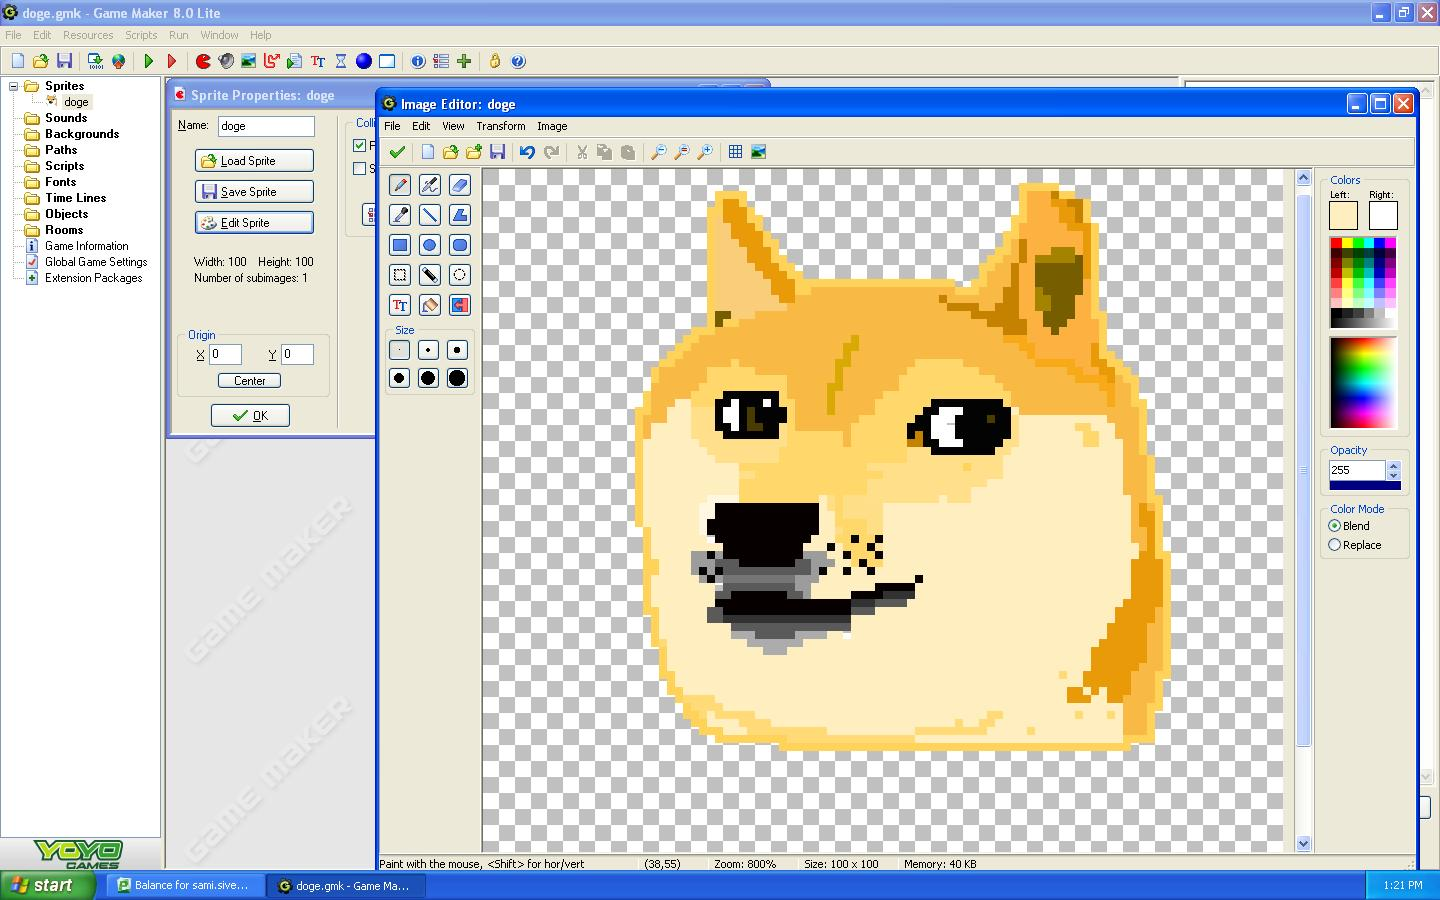 wow. so game maker. much pixel. very doge.